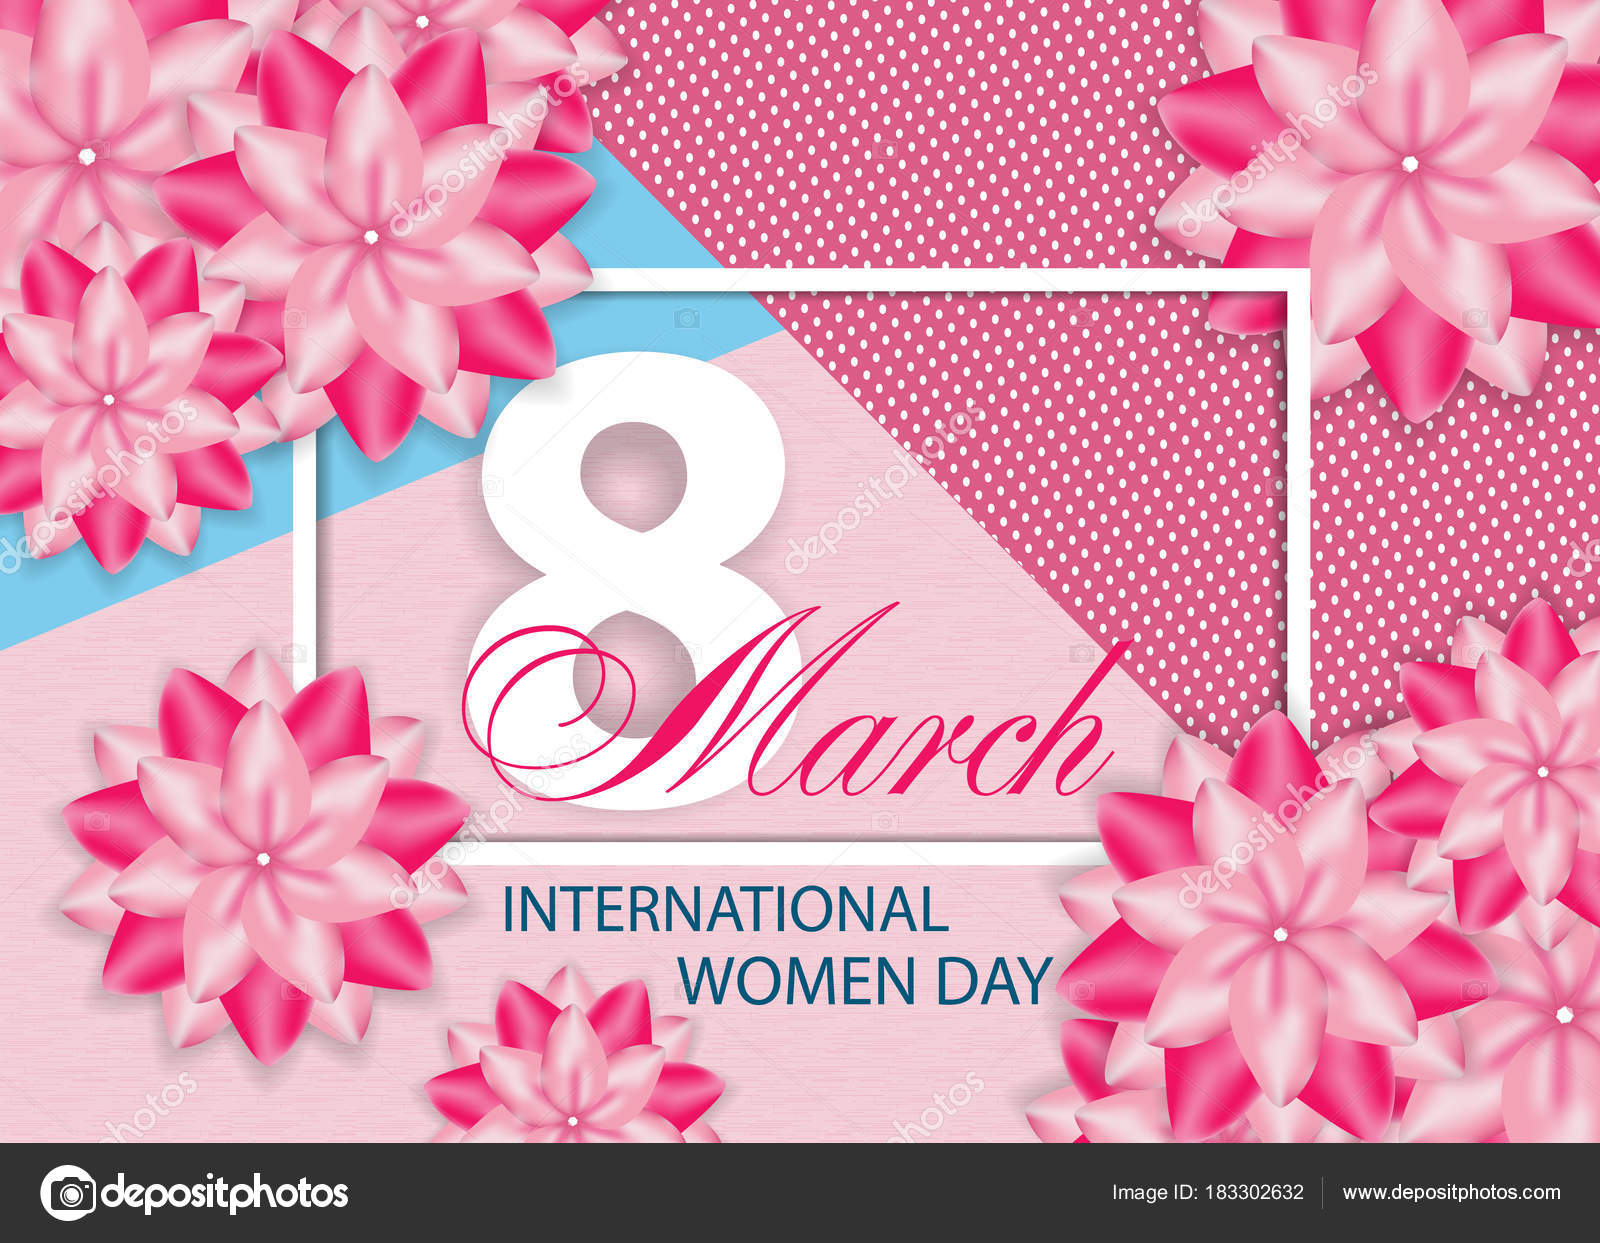 Beautiful pink background with flowers for International women's day on March 8. Vector illustration. — Vector by NataliaKarebina